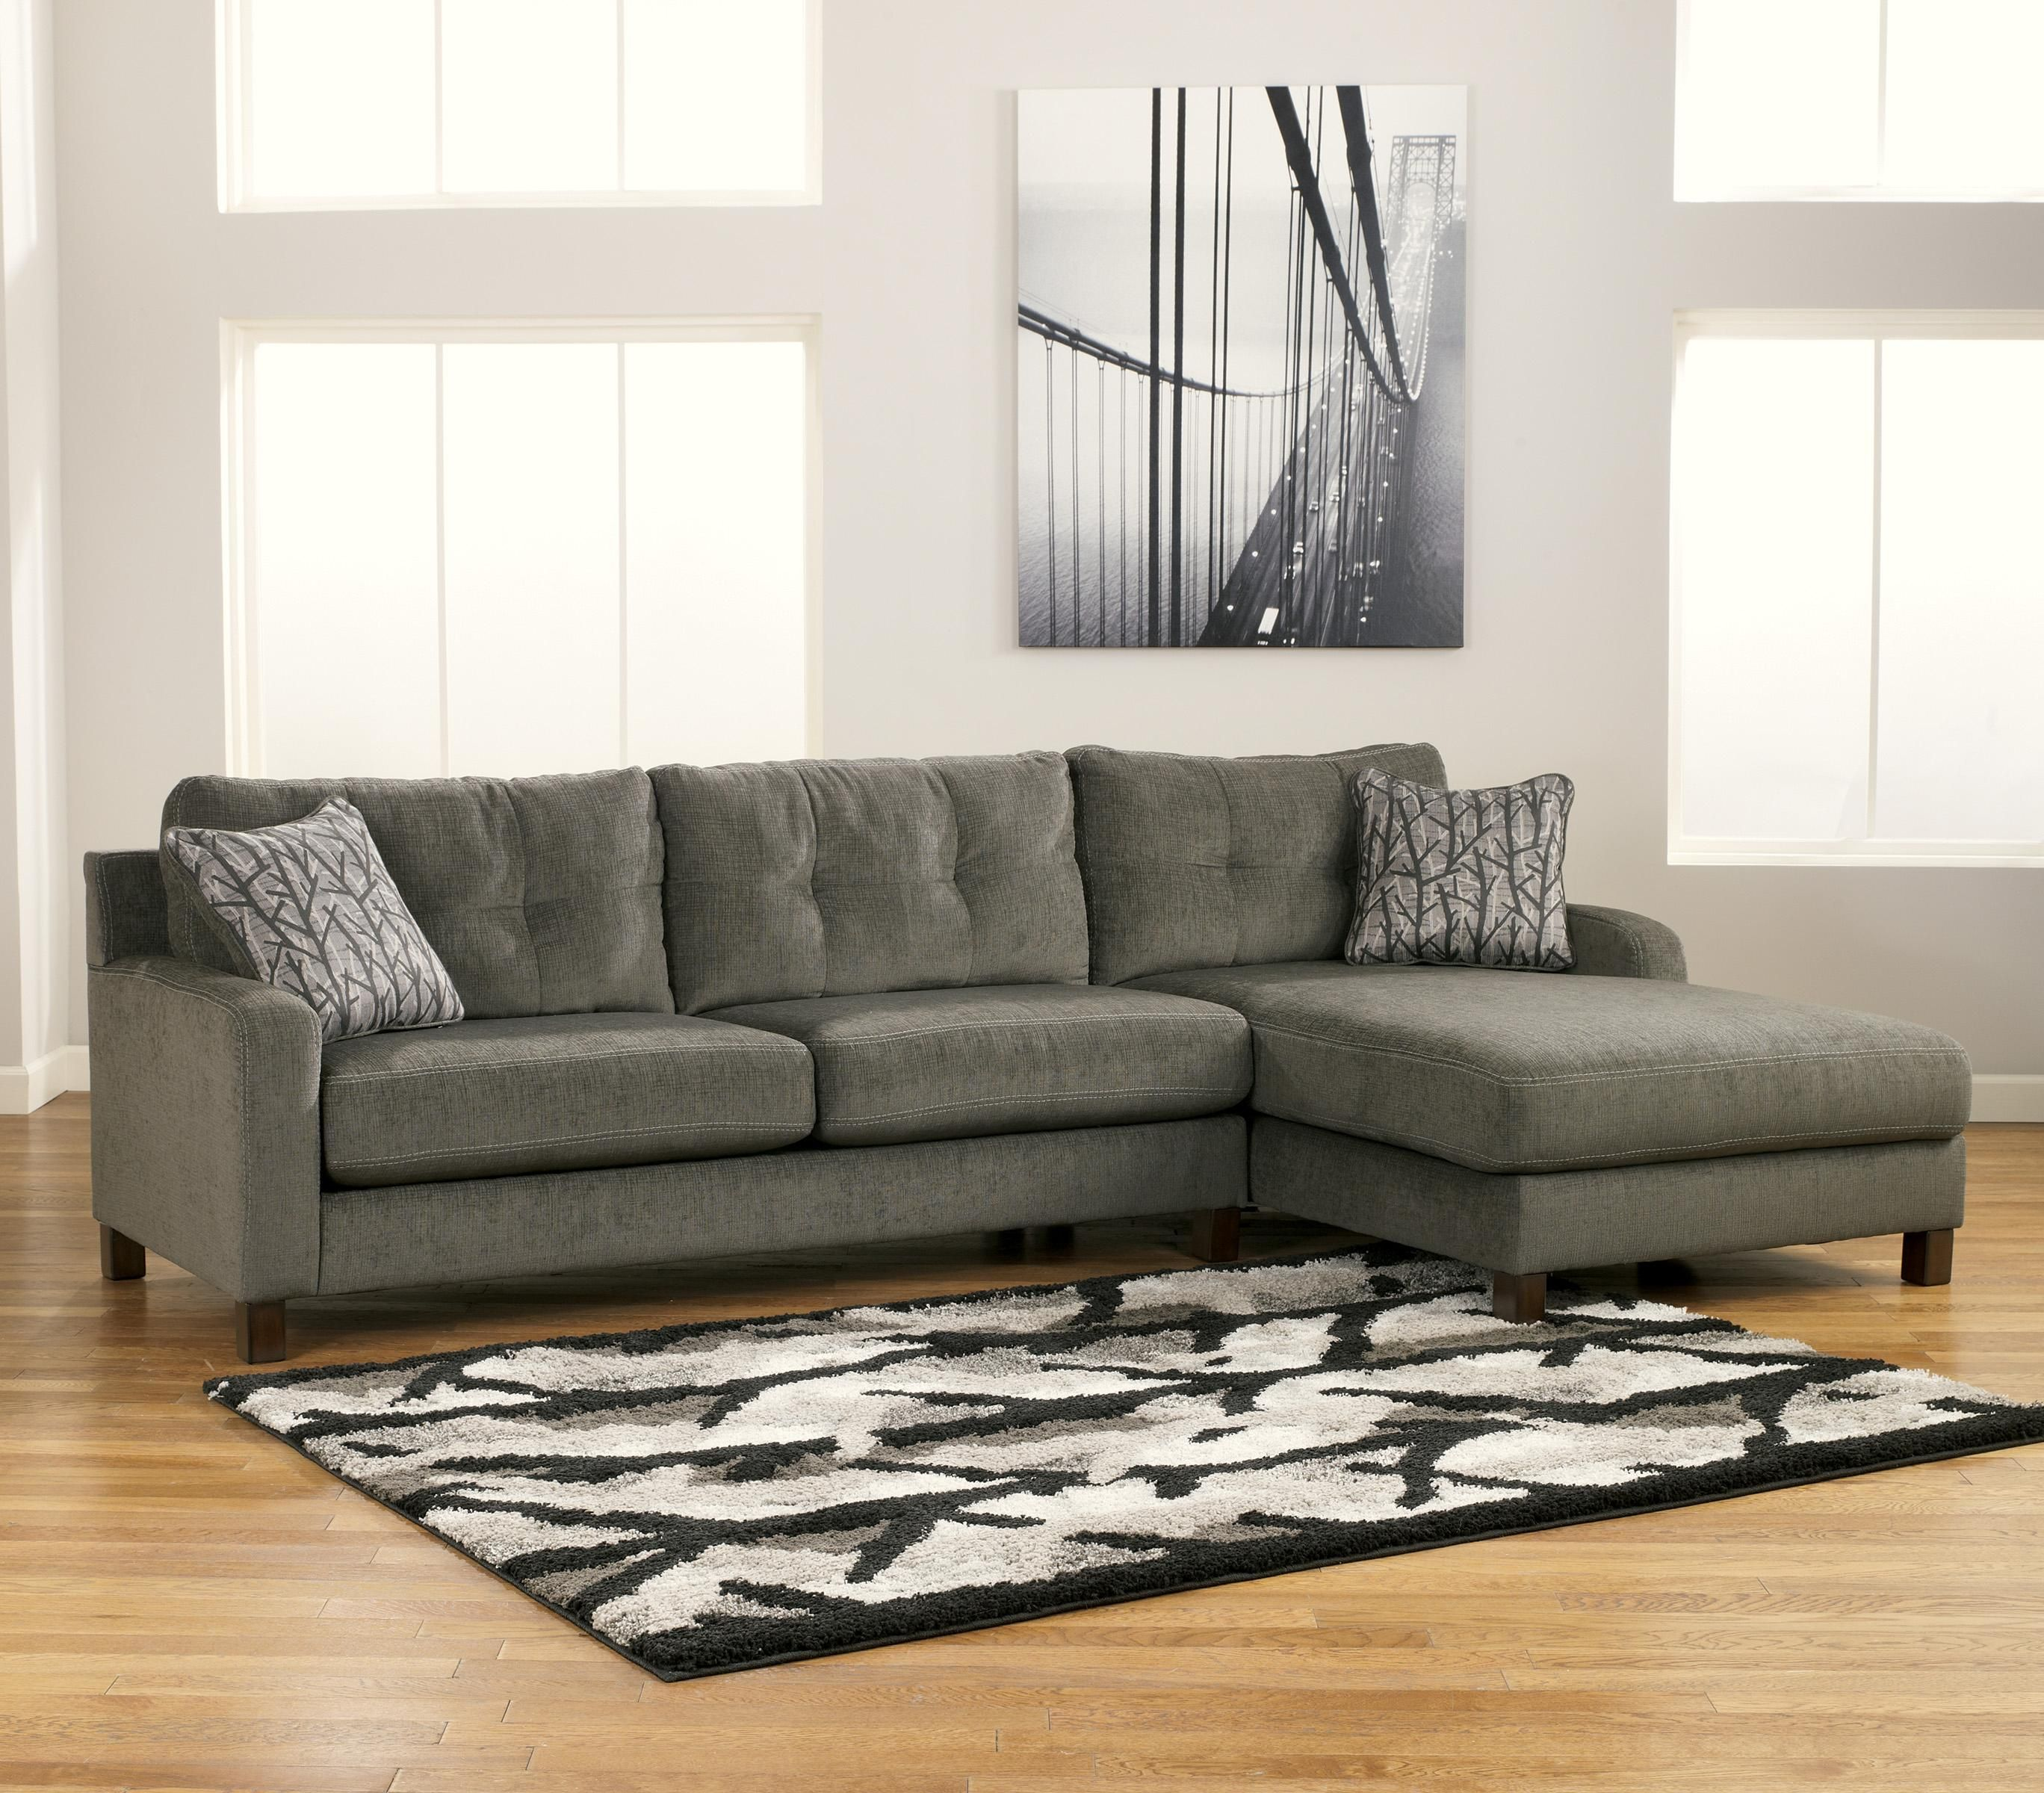 Marlo Furniture Sectional Sofa